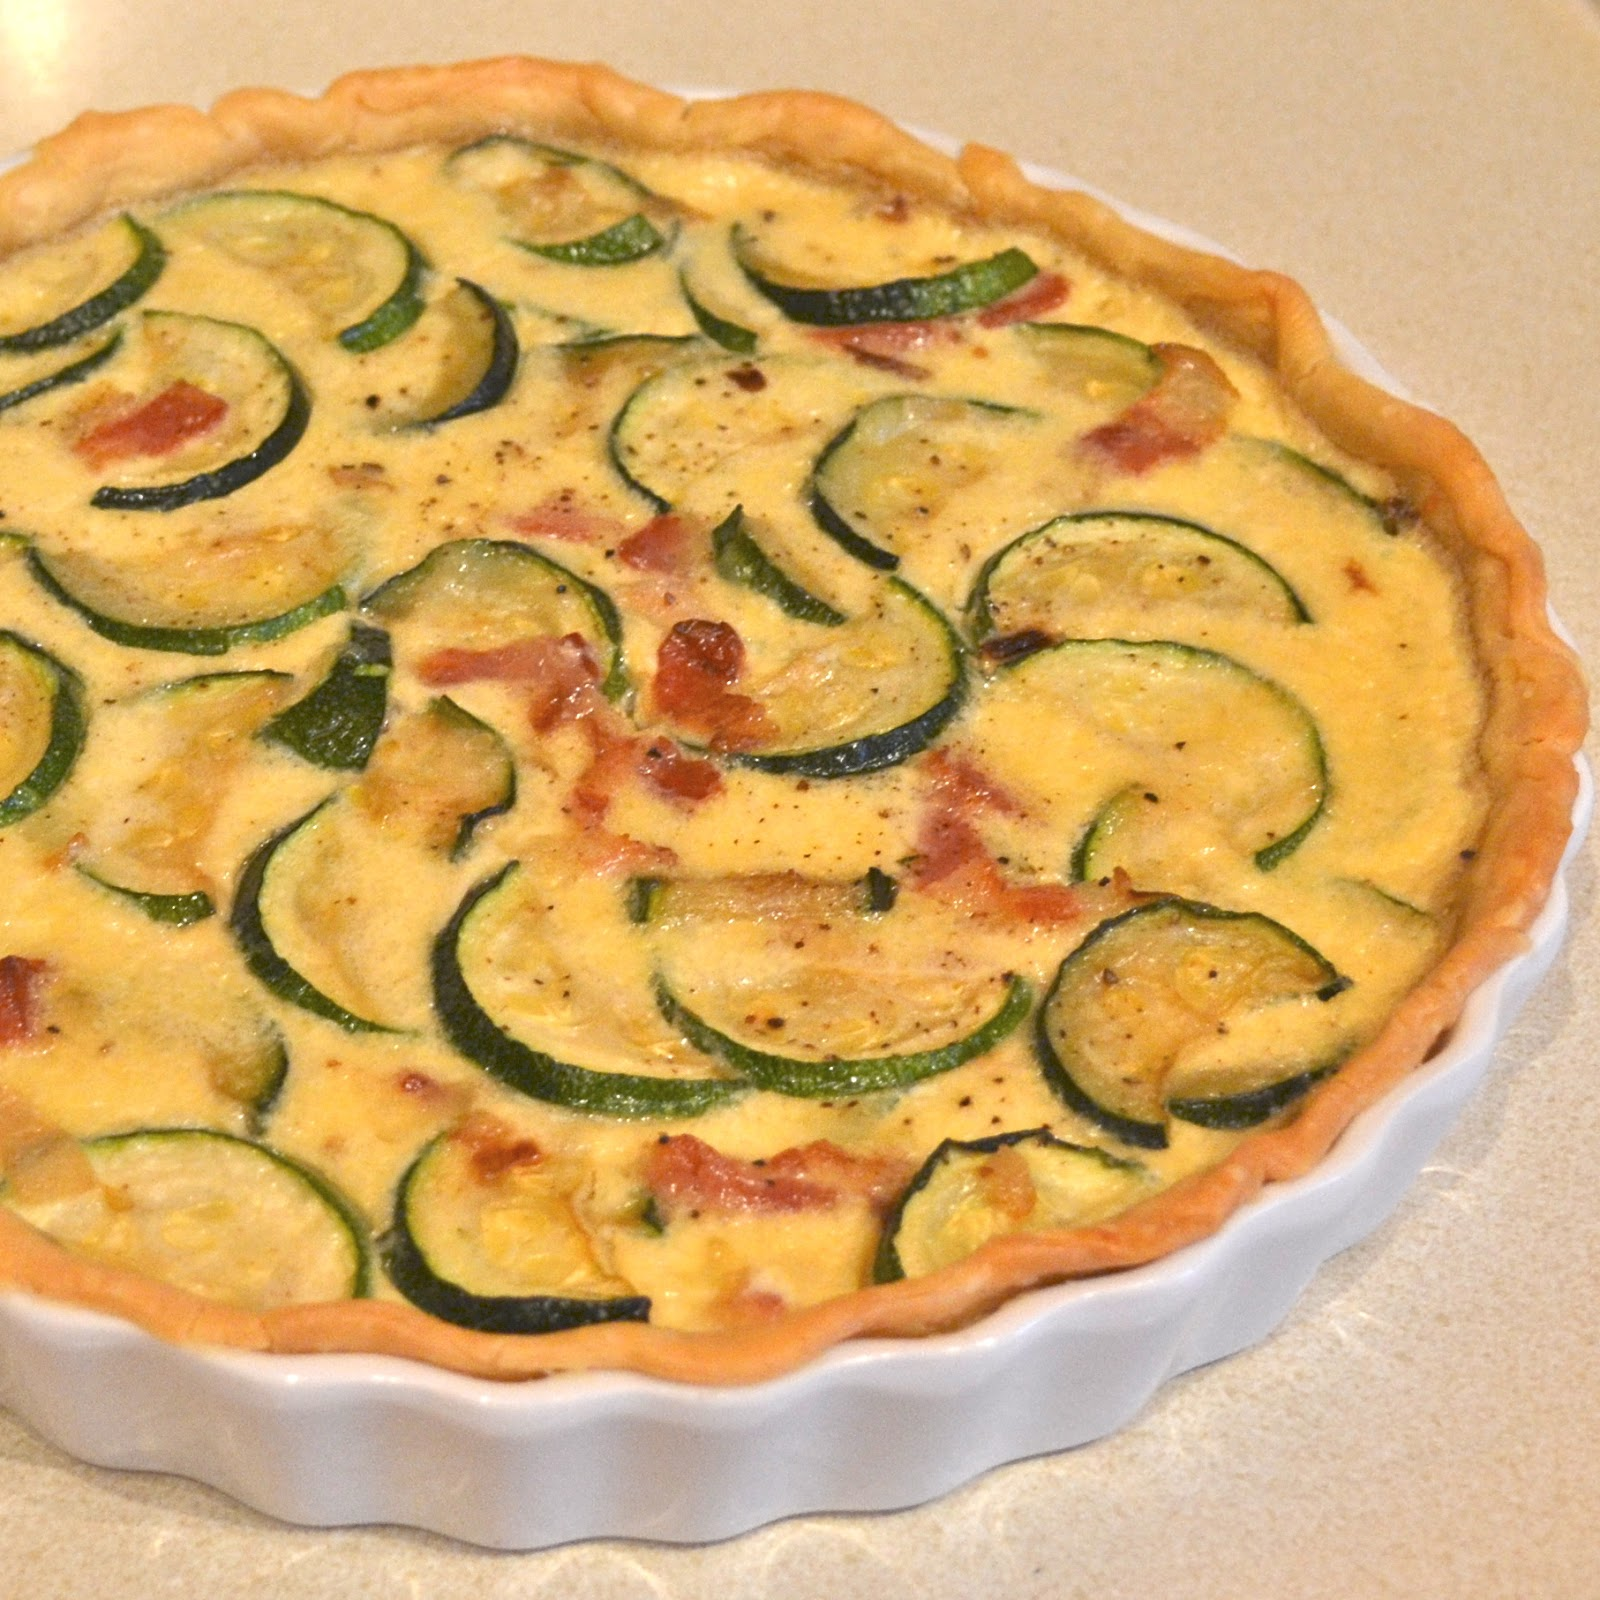 Zucchini, Bacon and Gruyere Quiche or Zucchini Explosion Part lll